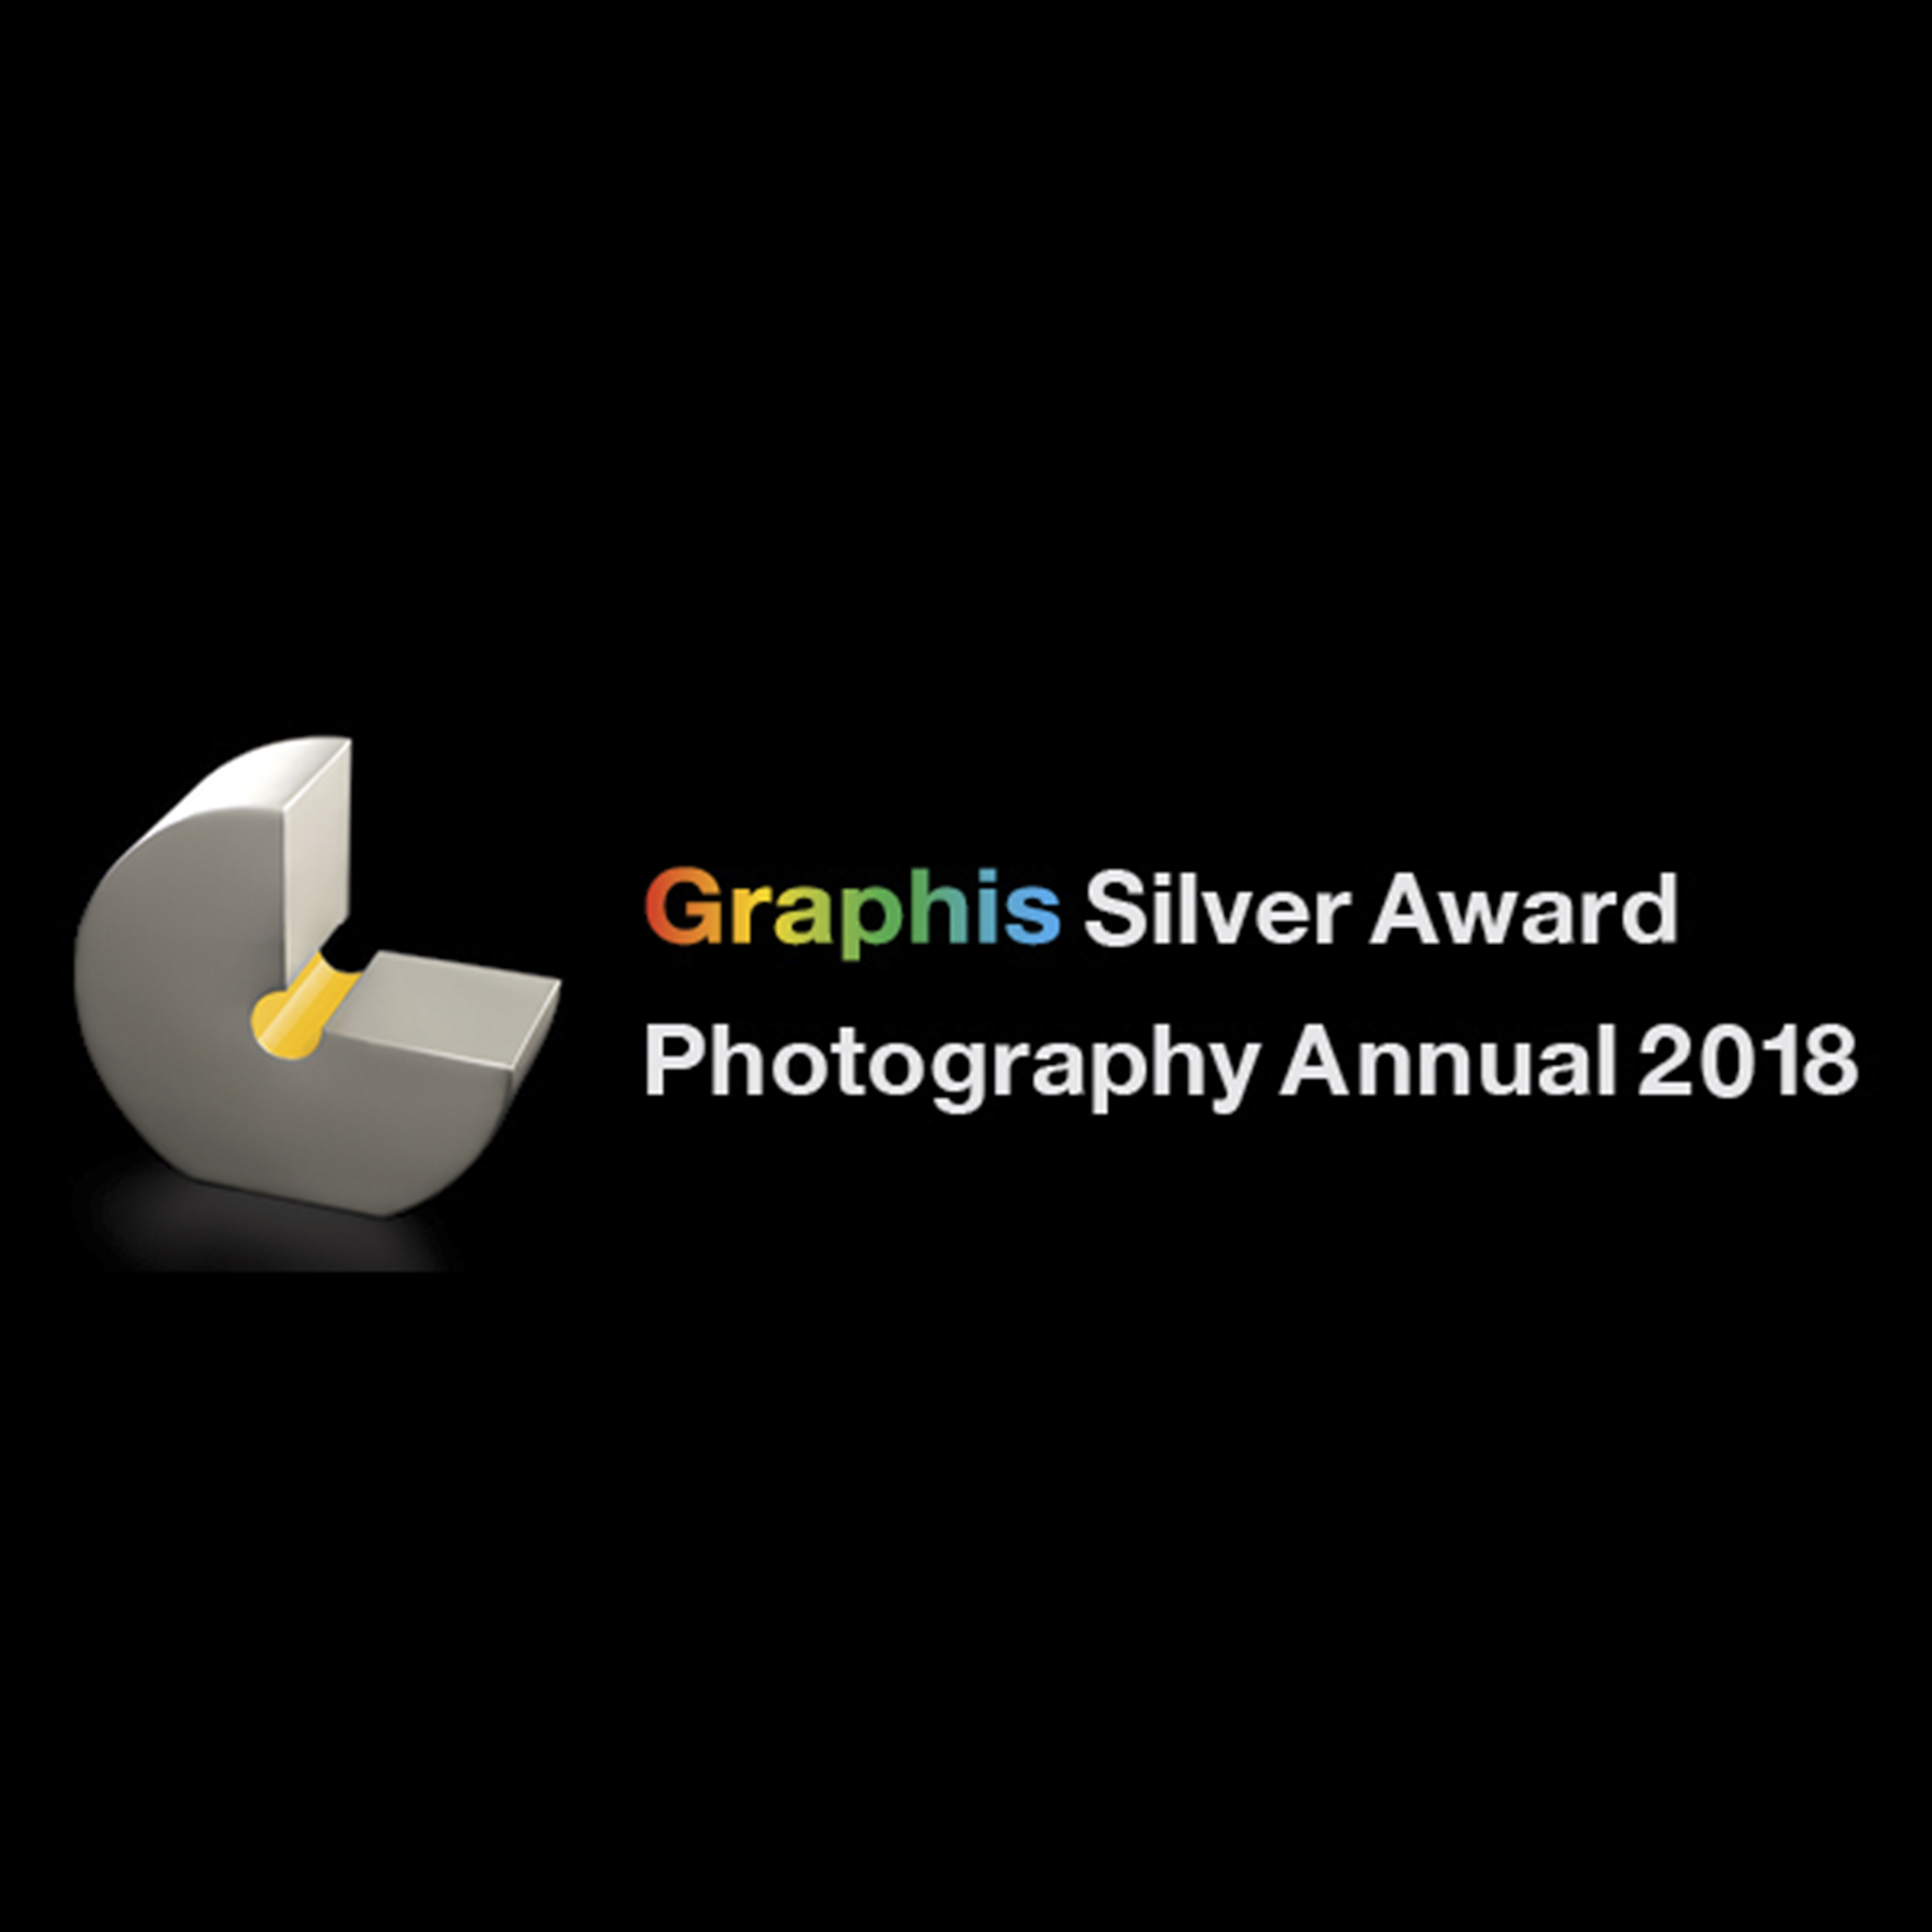 Graphis Photo Annual 2018_Silver.jpg